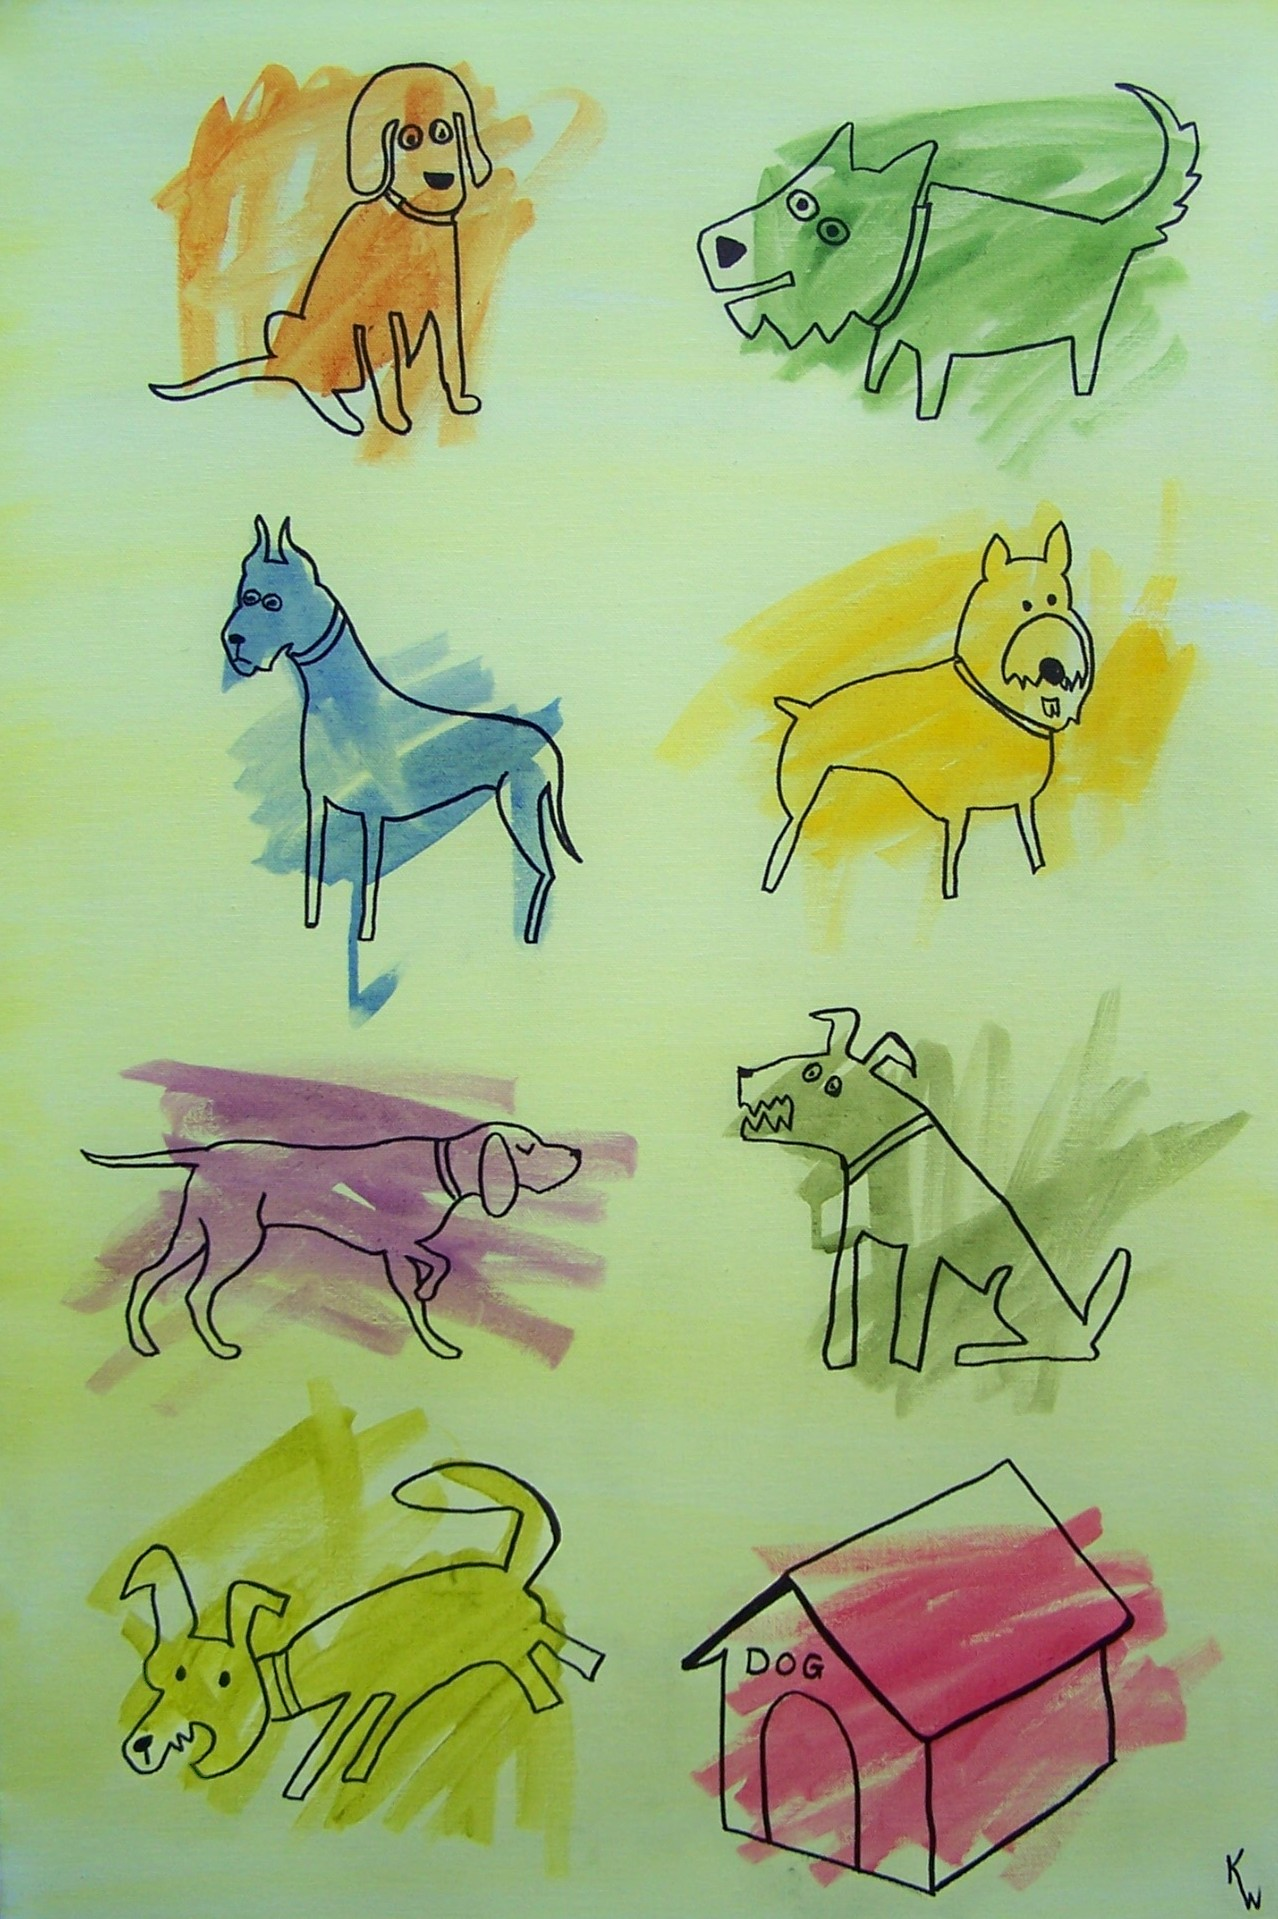 coloring-book-dogs.jpg